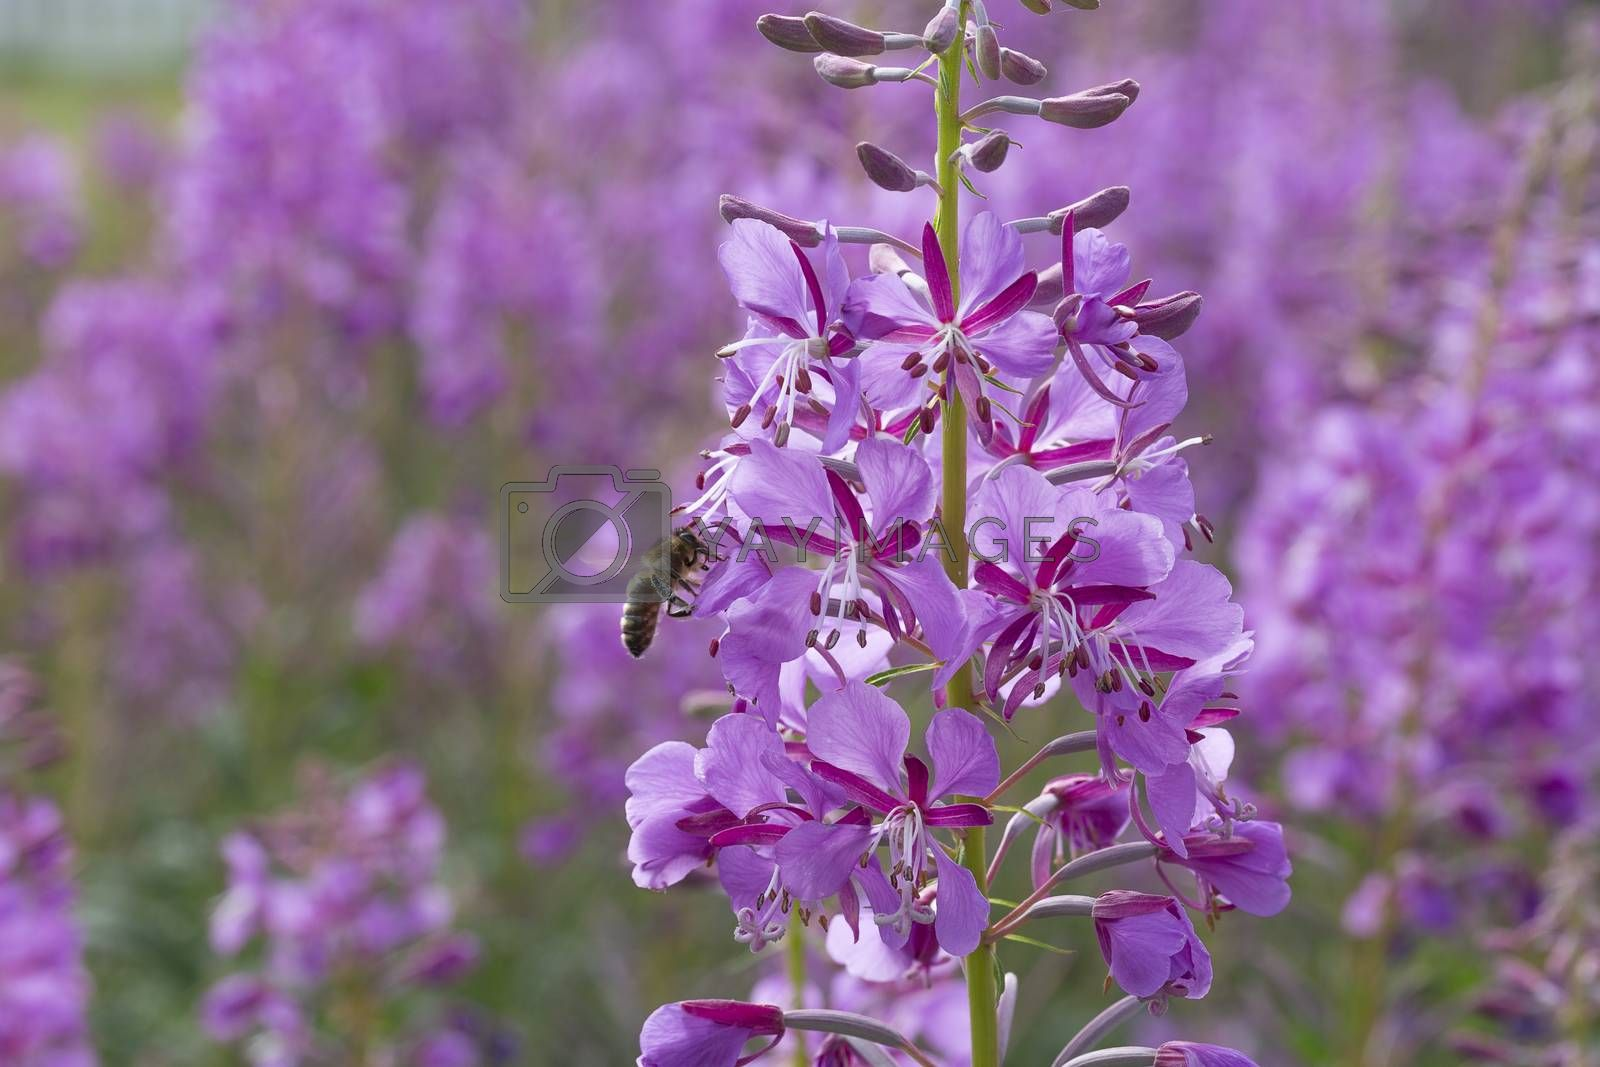 Fireweed Flowers with Bees  by Emmoth